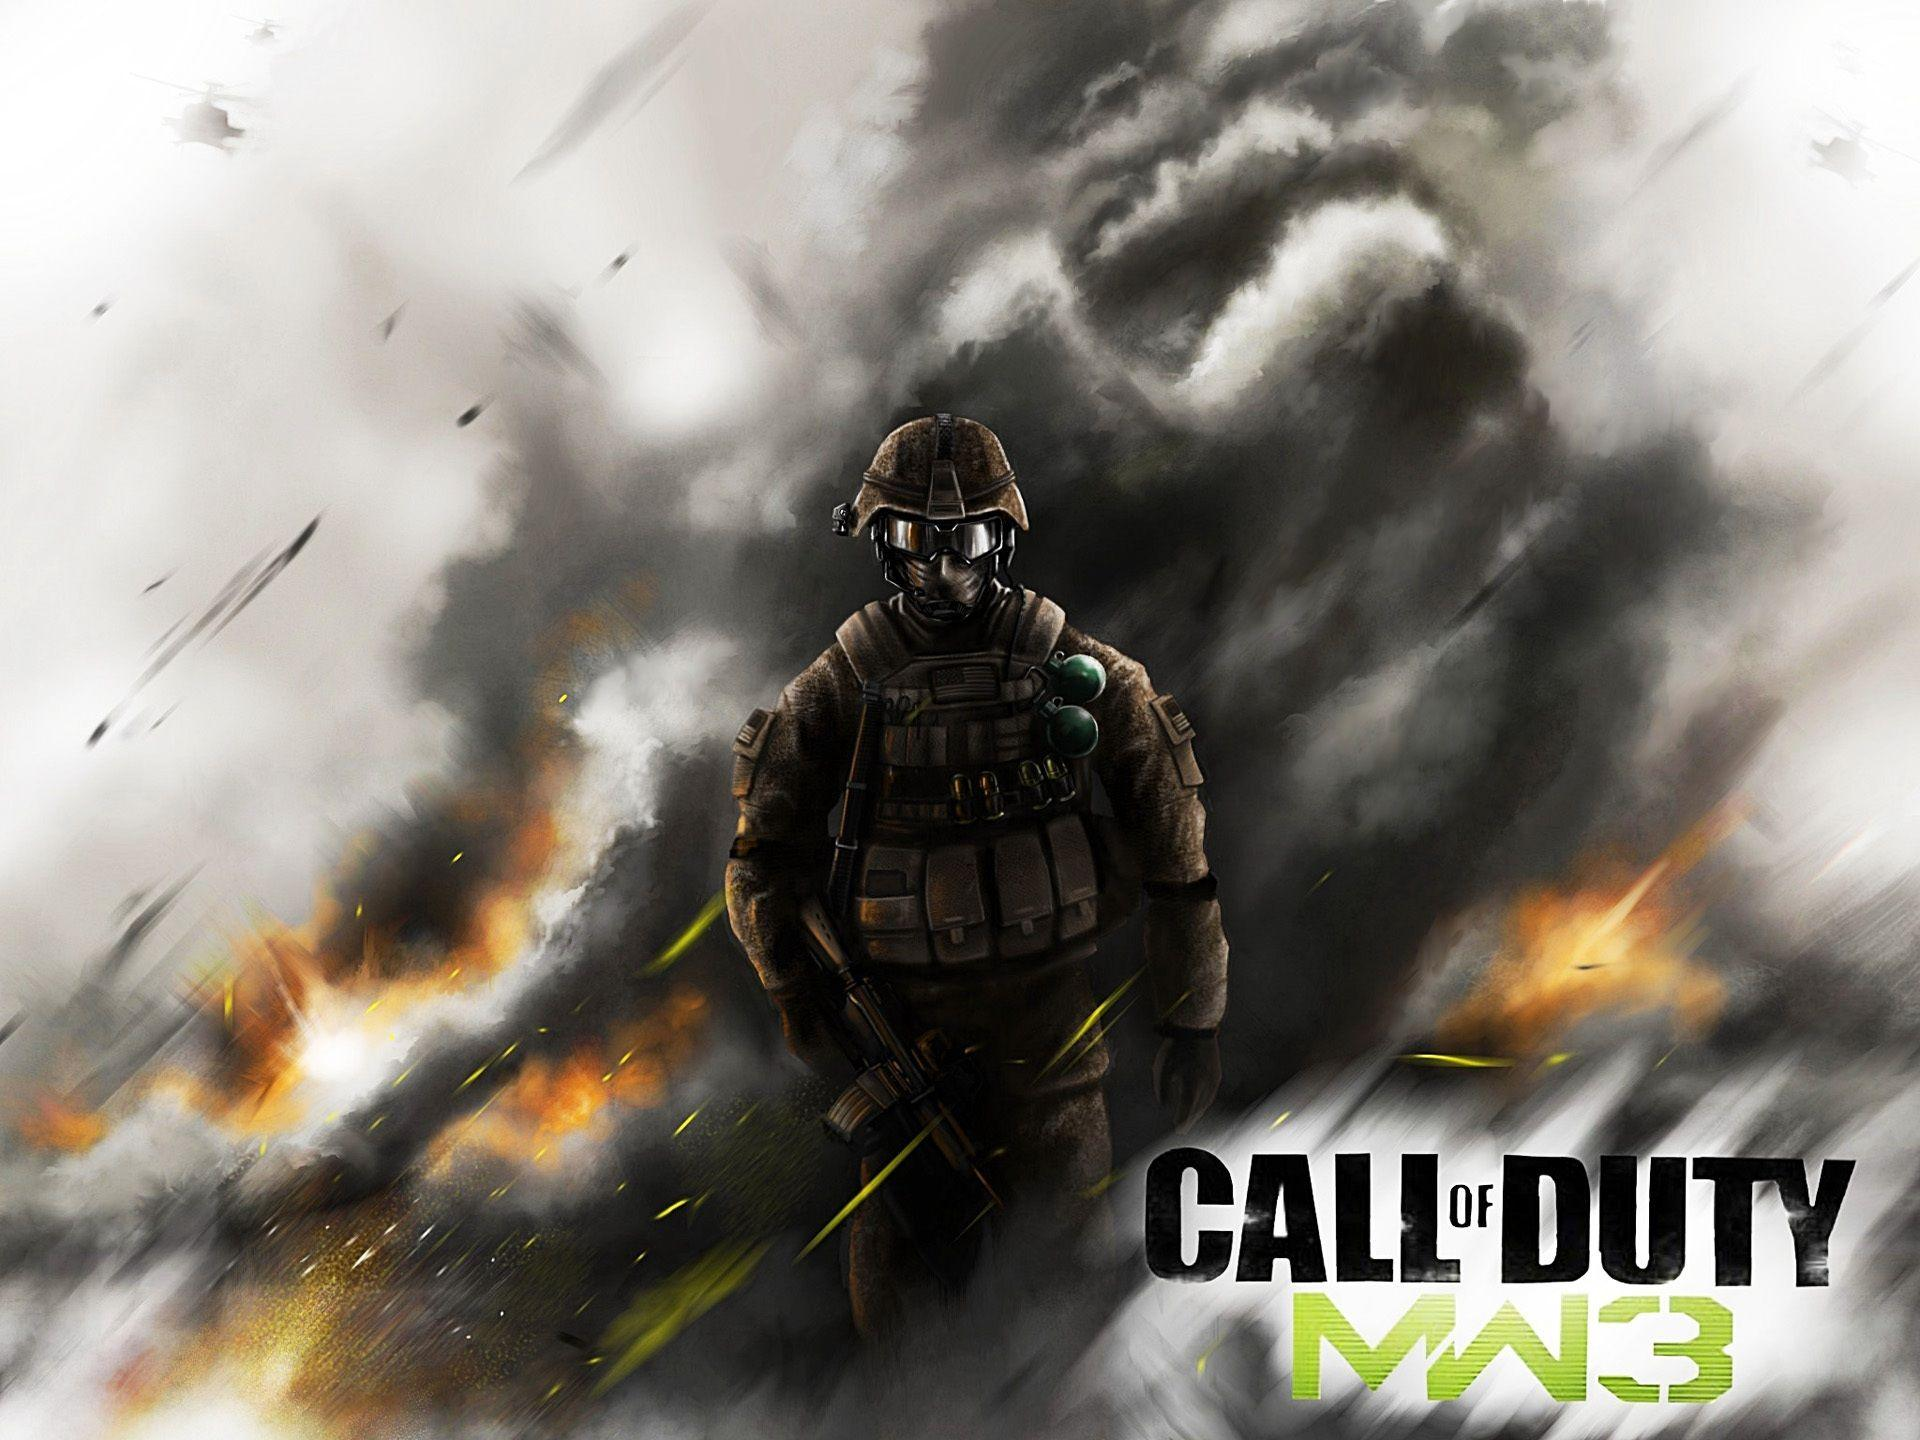 Call Of Duty Modern Warfare 3 Wallpapers Group (69+)